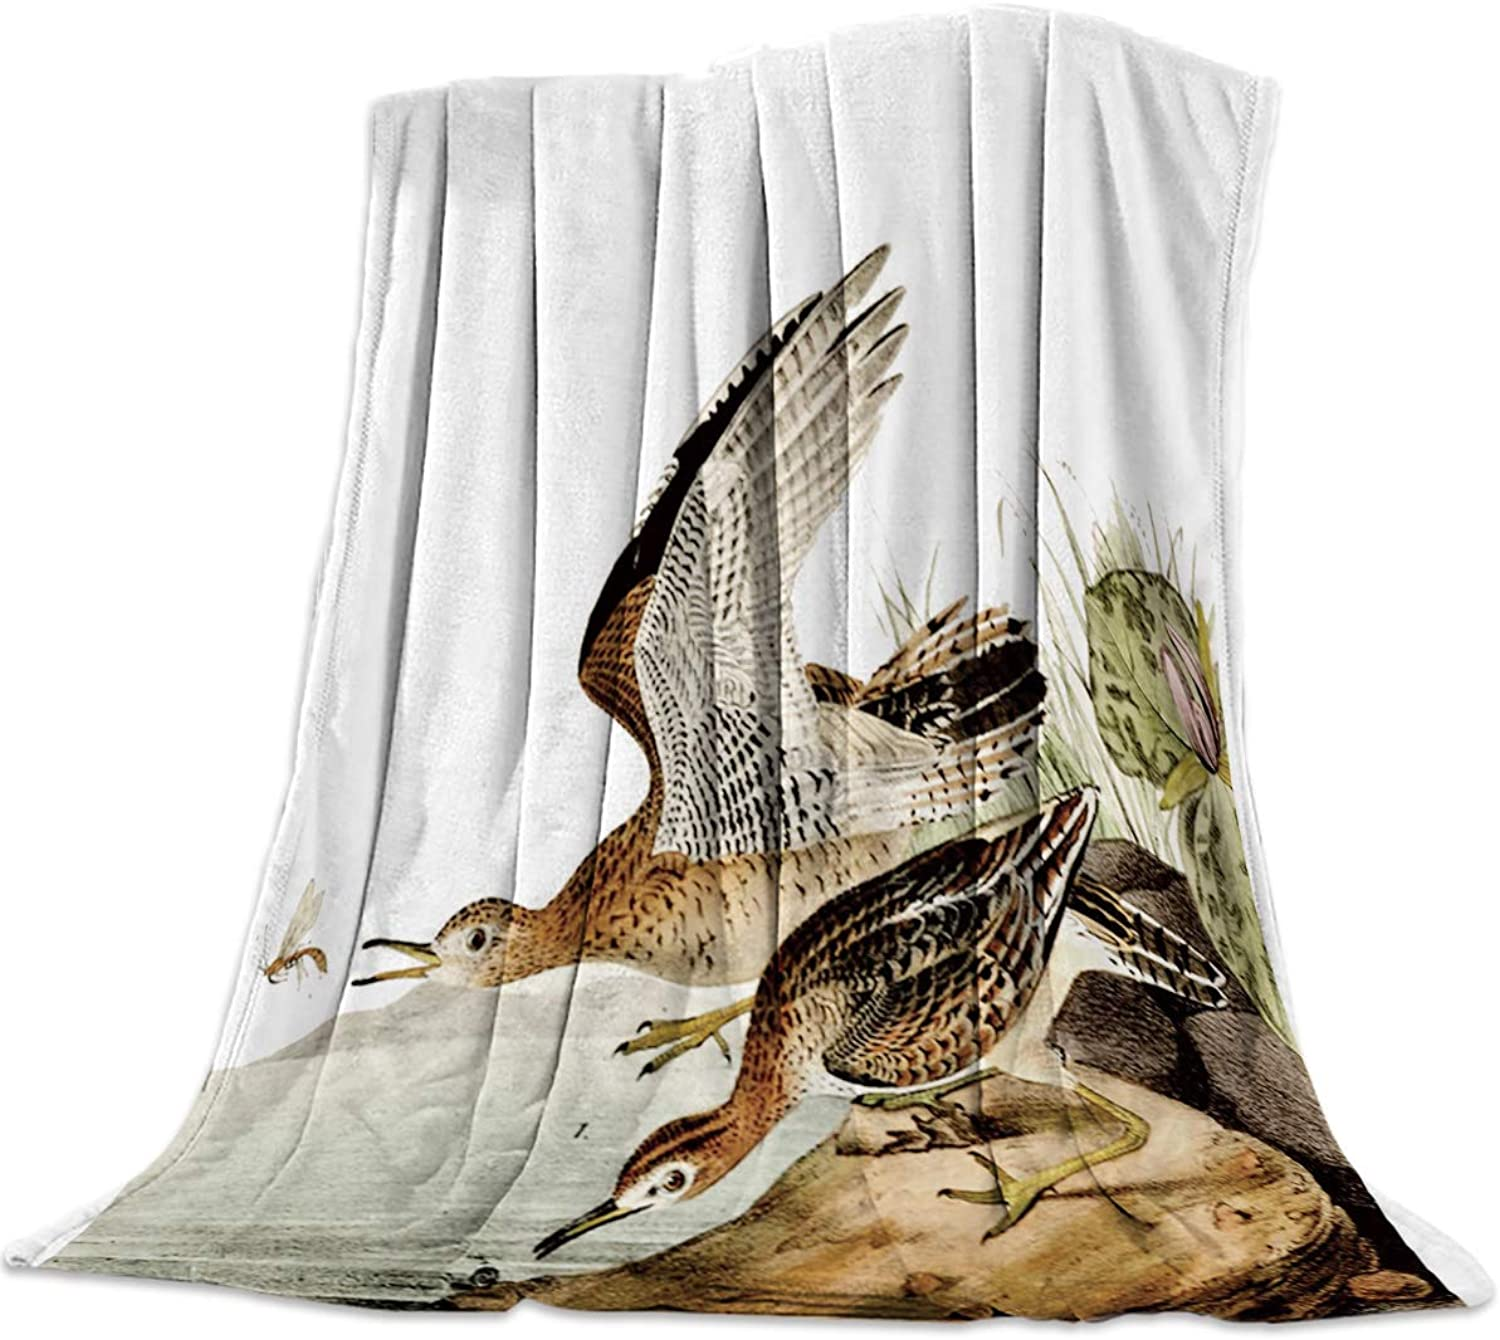 YEHO Art Gallery Super Soft Blanket Flannel Fleece Bed Throw-blankets Home Decor,The Bartramia longicauda Birds with Dragonfly Hand Painting Warm Blankets for Sofa Couch Bedroom Living Room,39x49 Inch